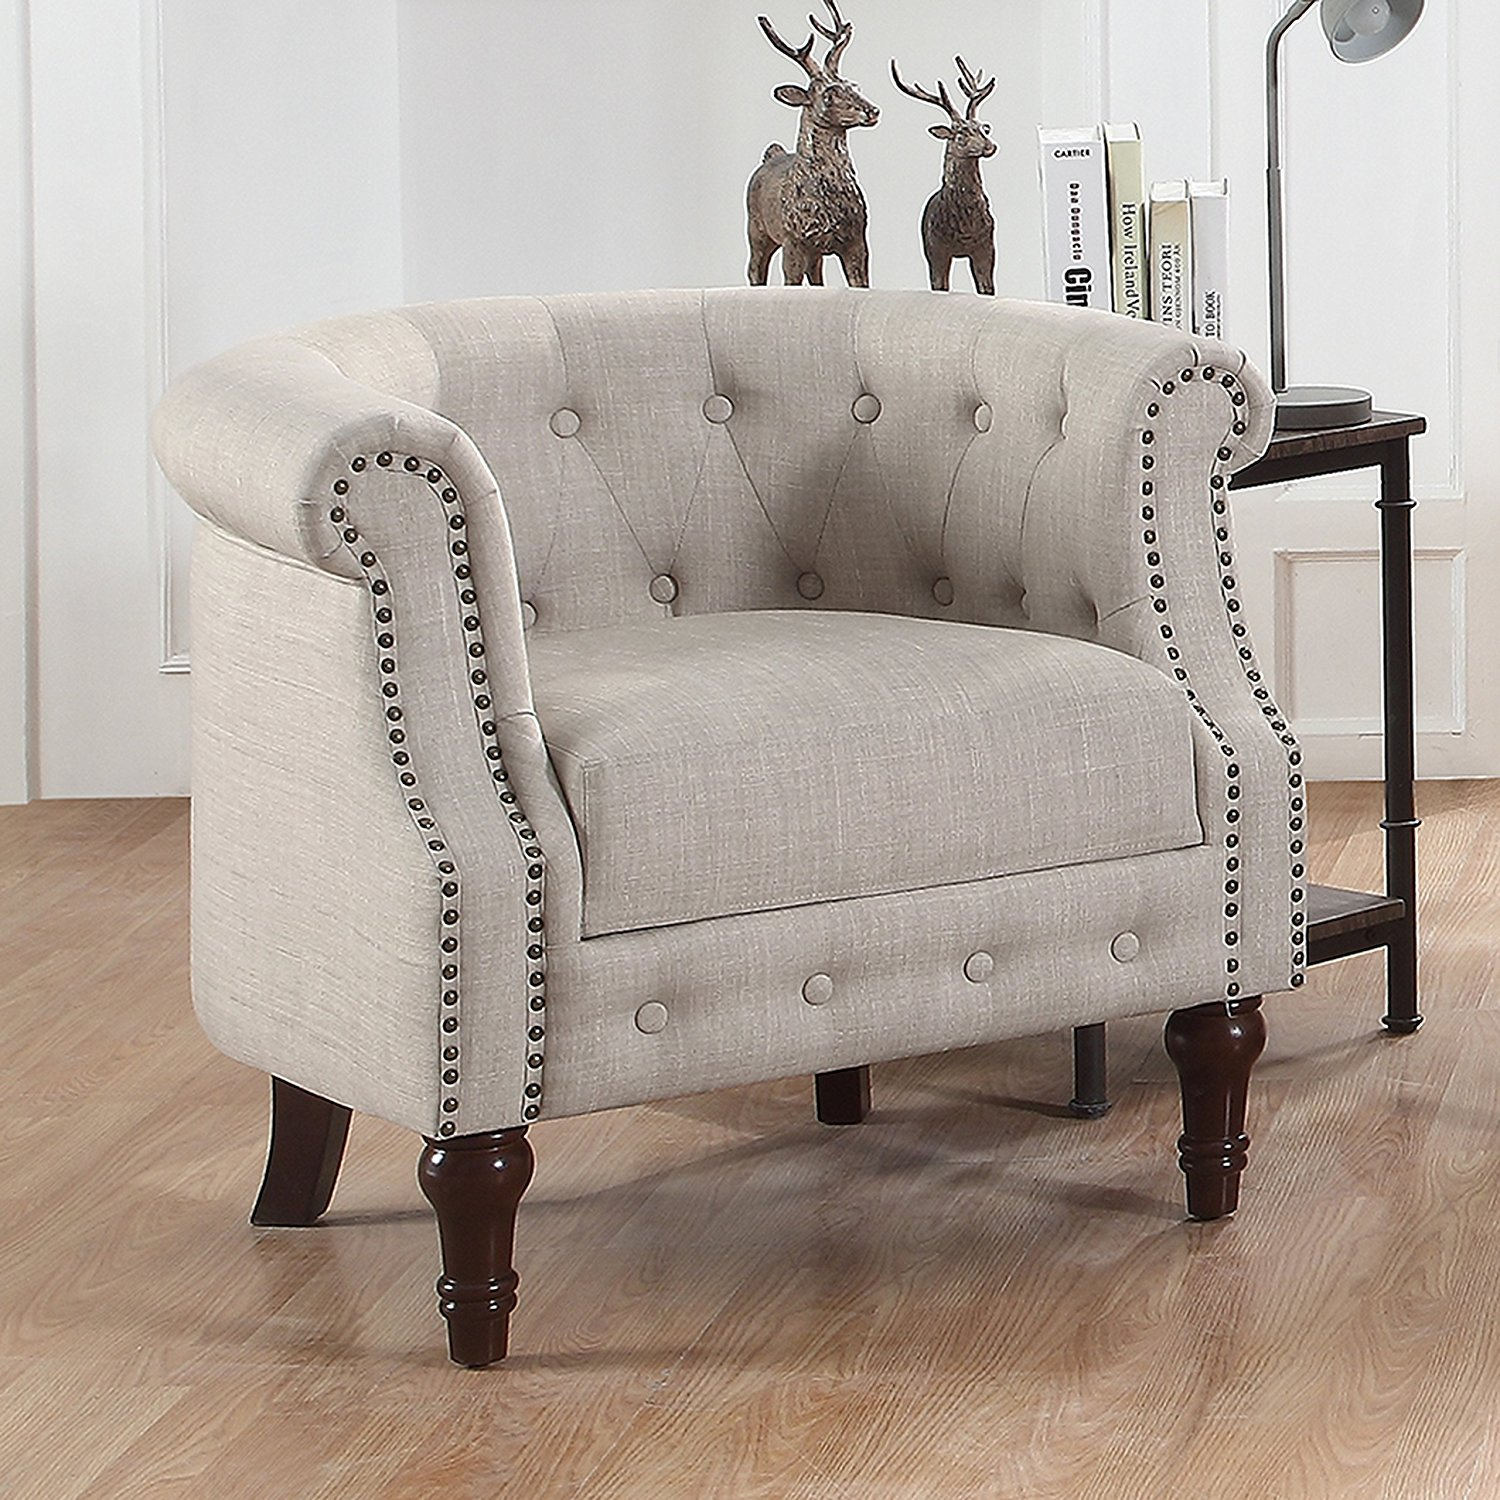 tufted nailhead chair ikea bar covers alton furniture da vigo barrel club with trim arms walmart com